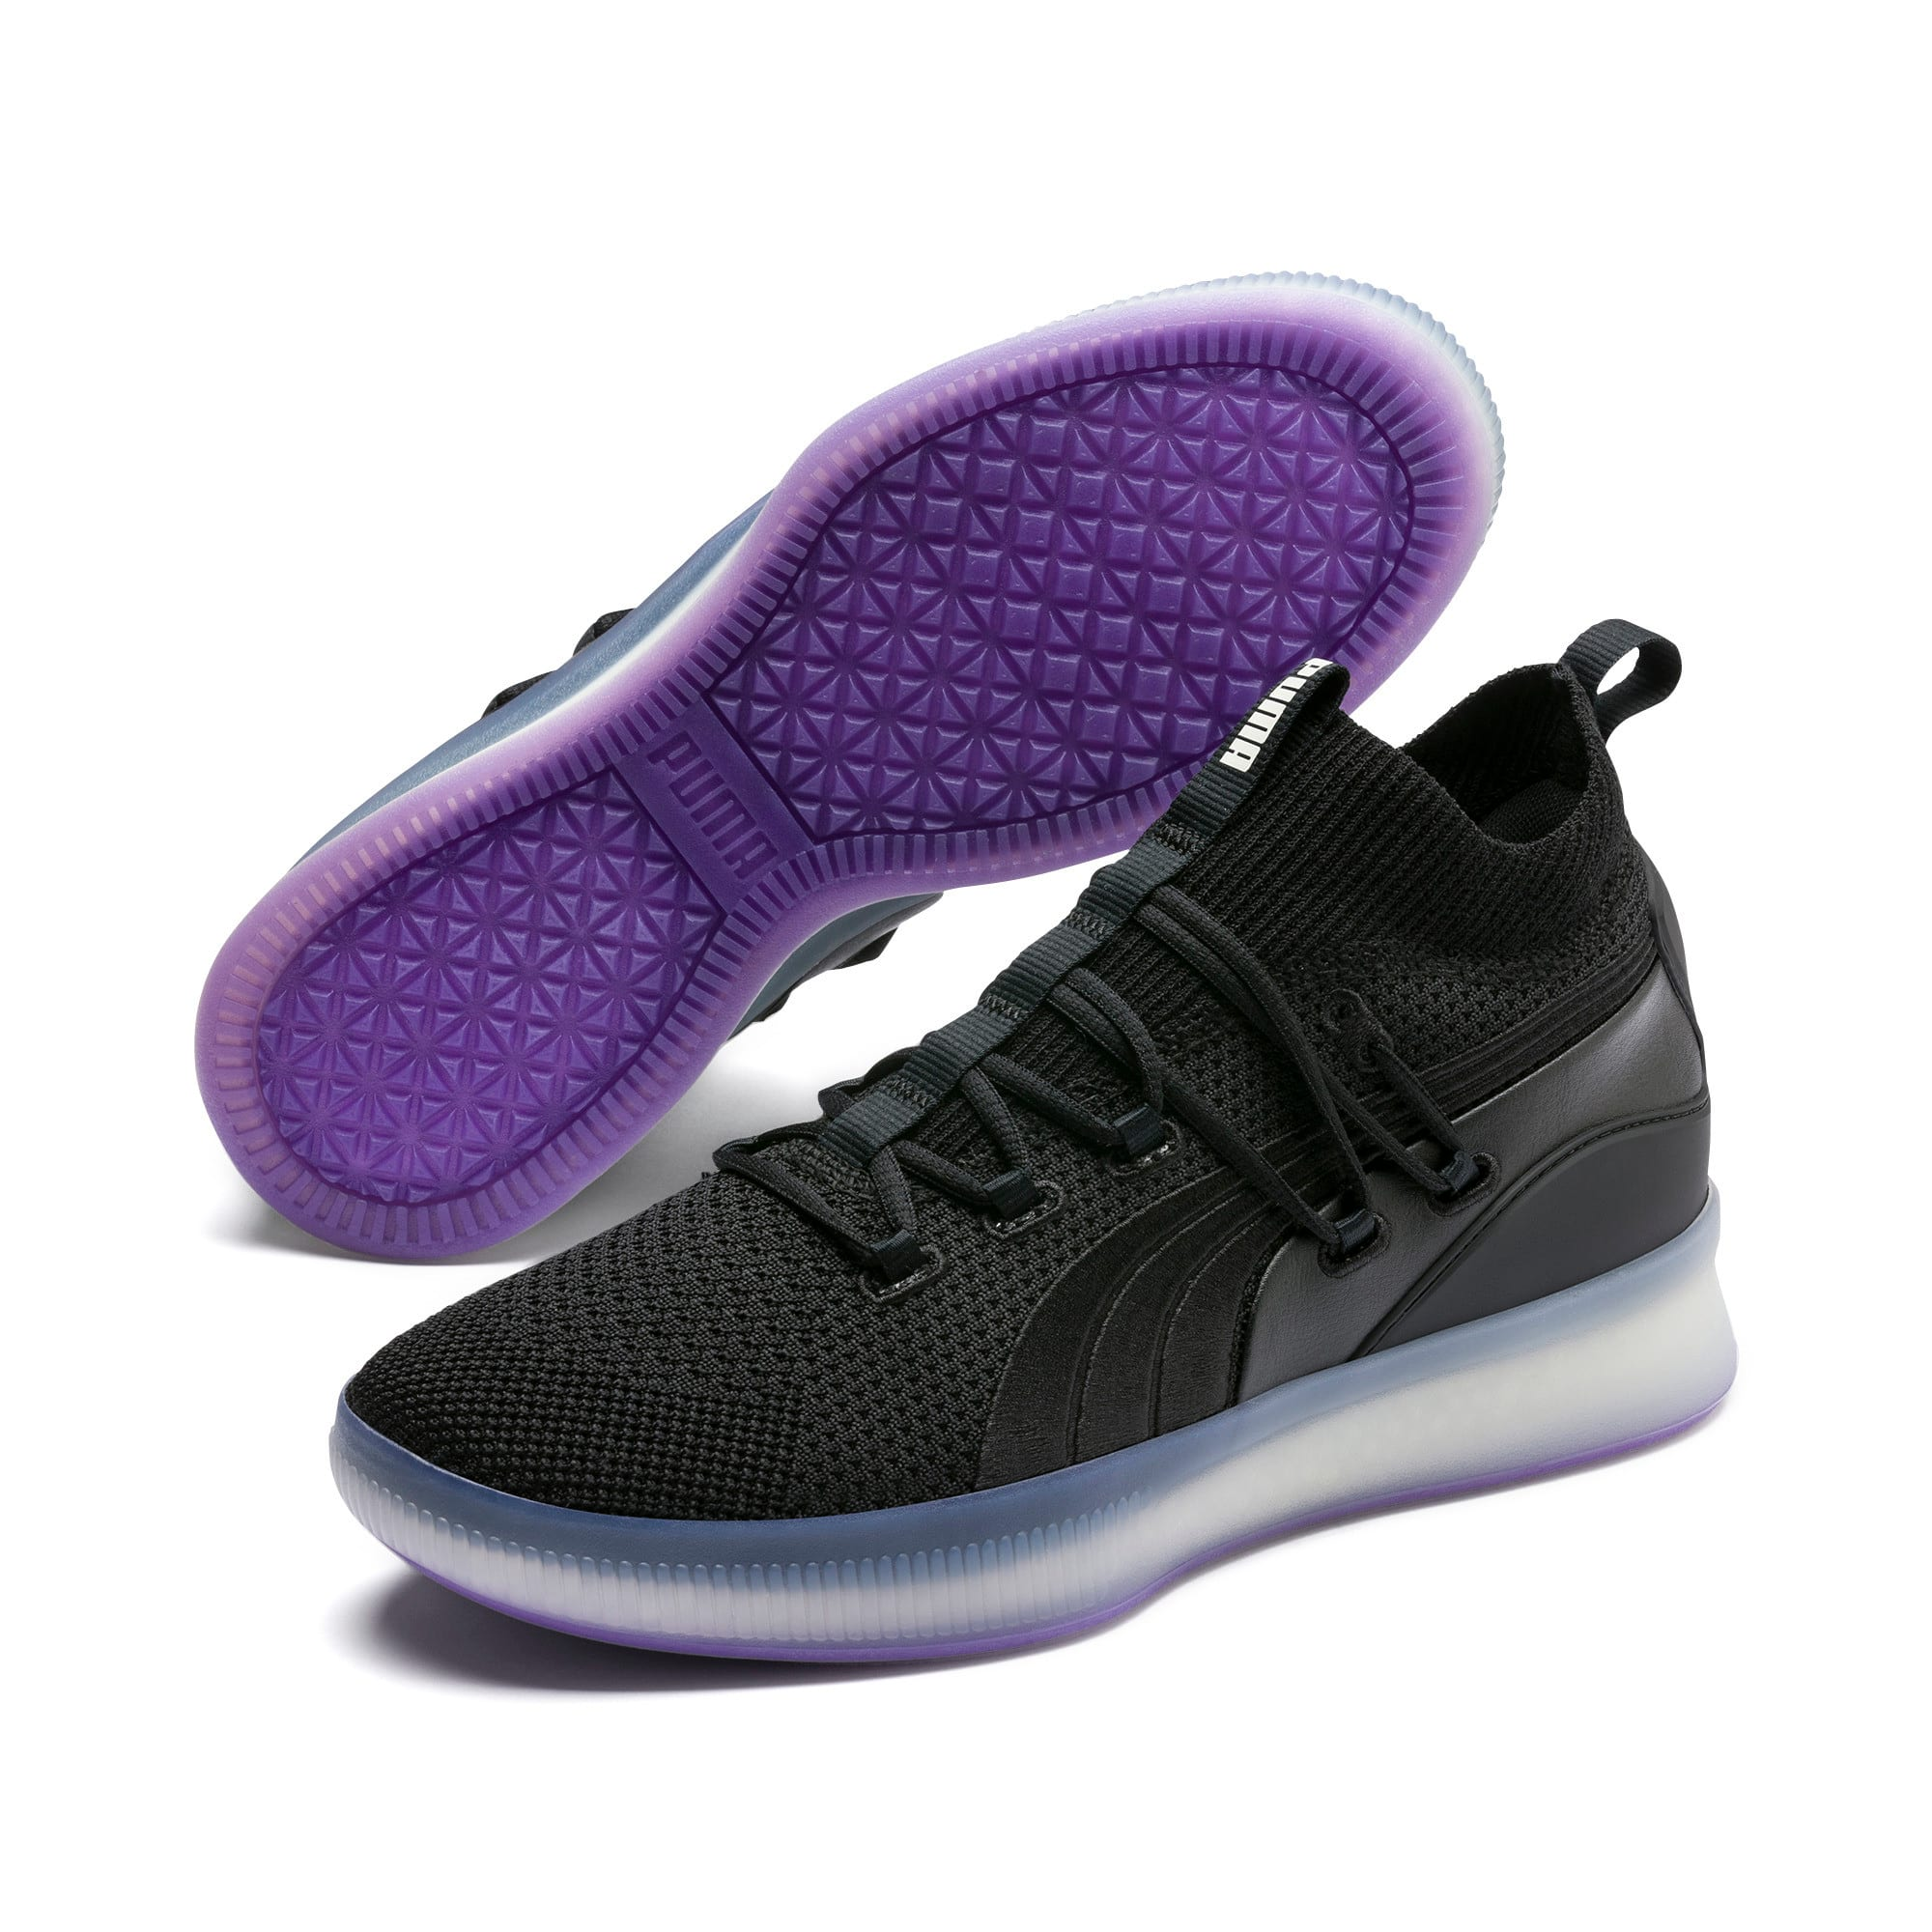 Thumbnail 2 of Clyde Court Basketball Shoes, Puma Black-ELECTRIC PURPLE, medium